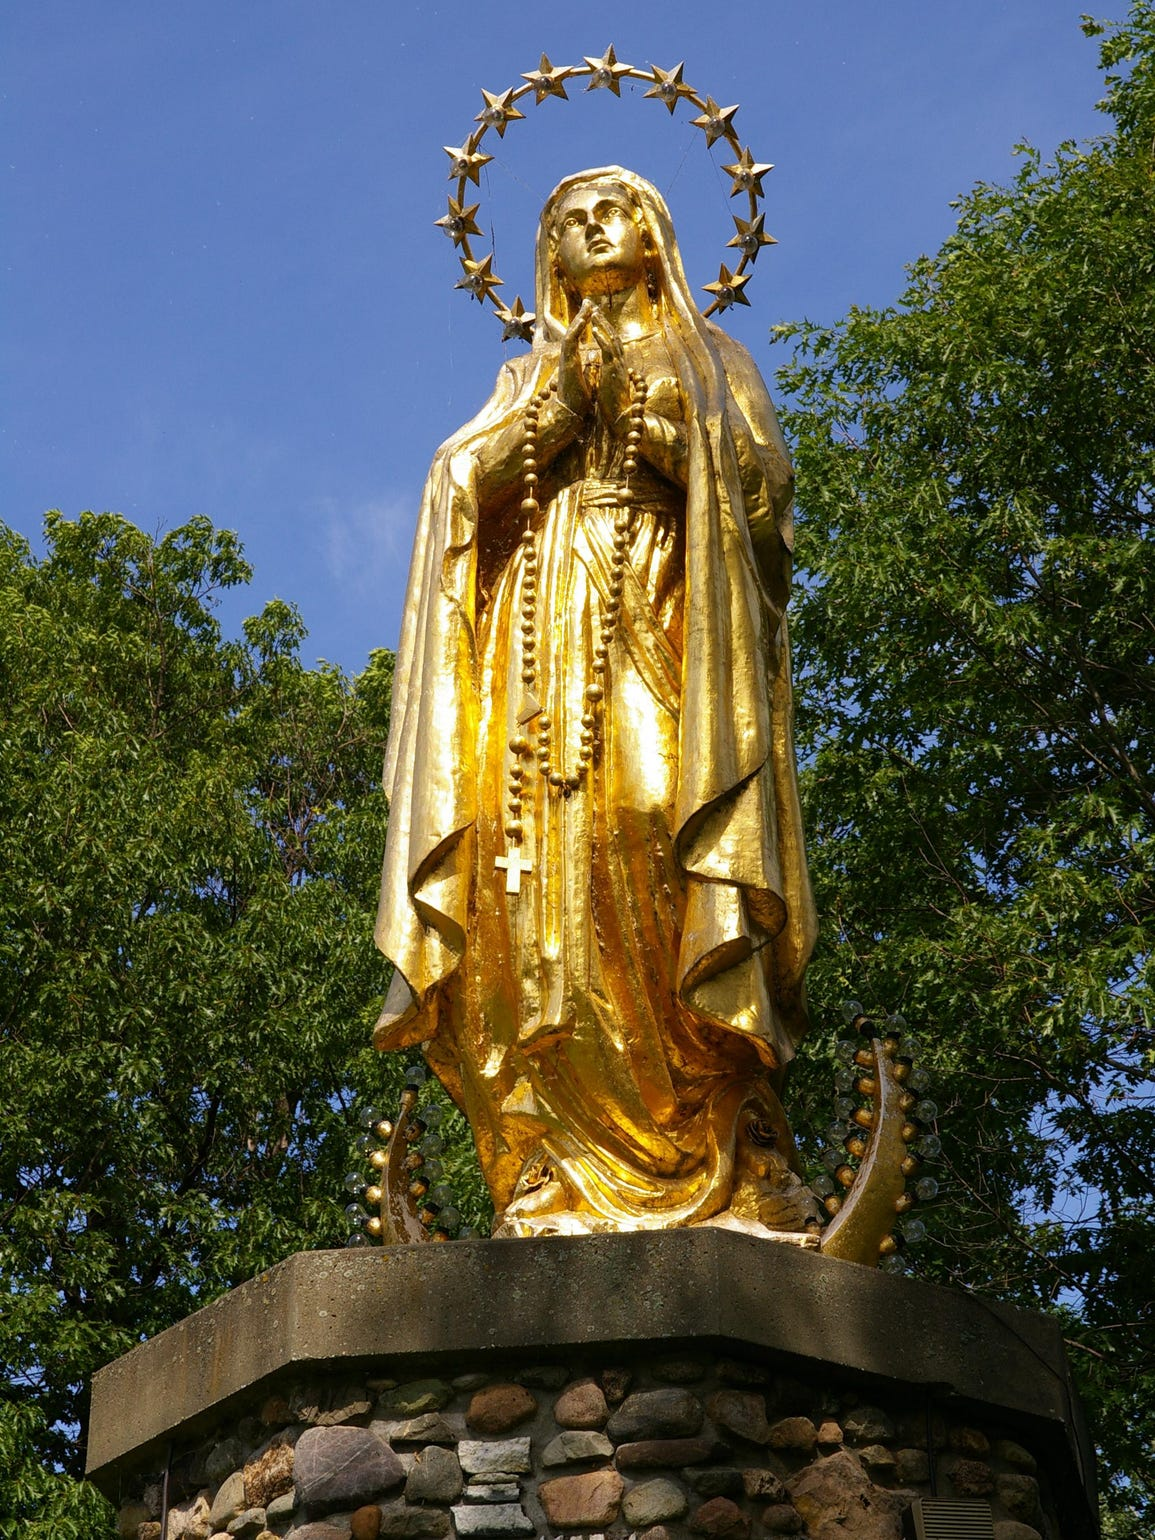 The statue of Our Lady of Lourdes at St. Anne's Shrine.